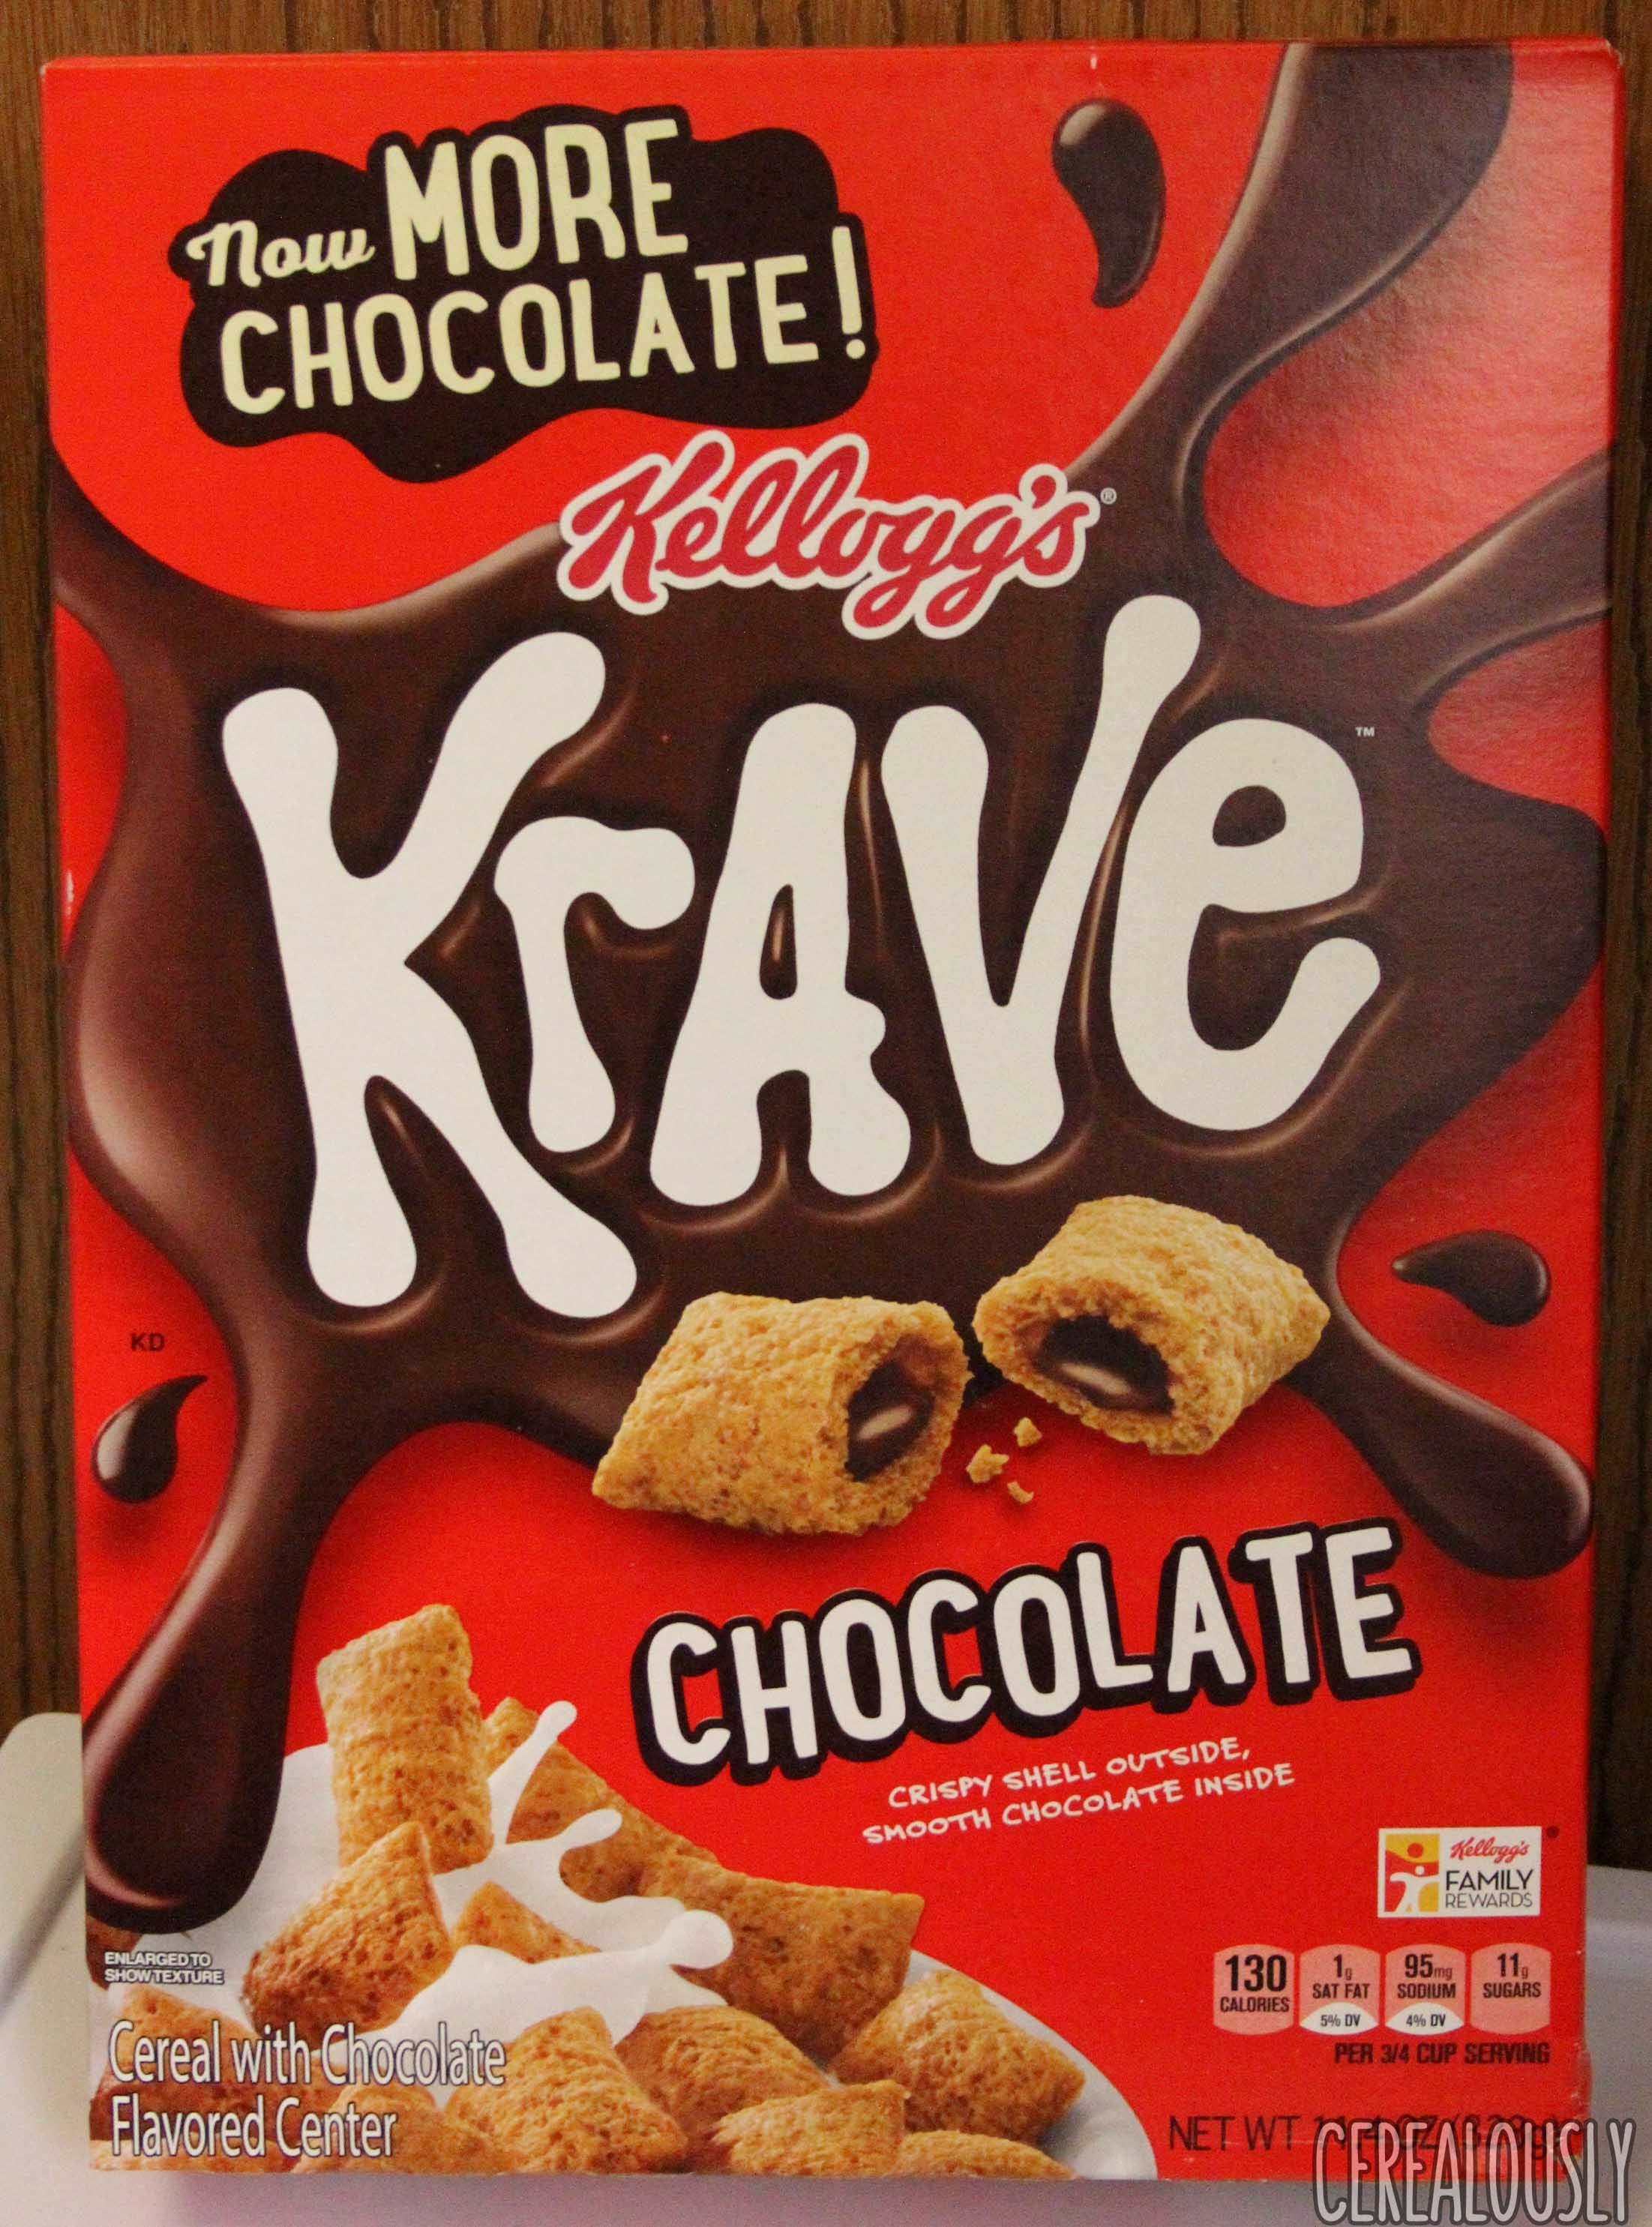 Review: Krave Cereal (Now with More